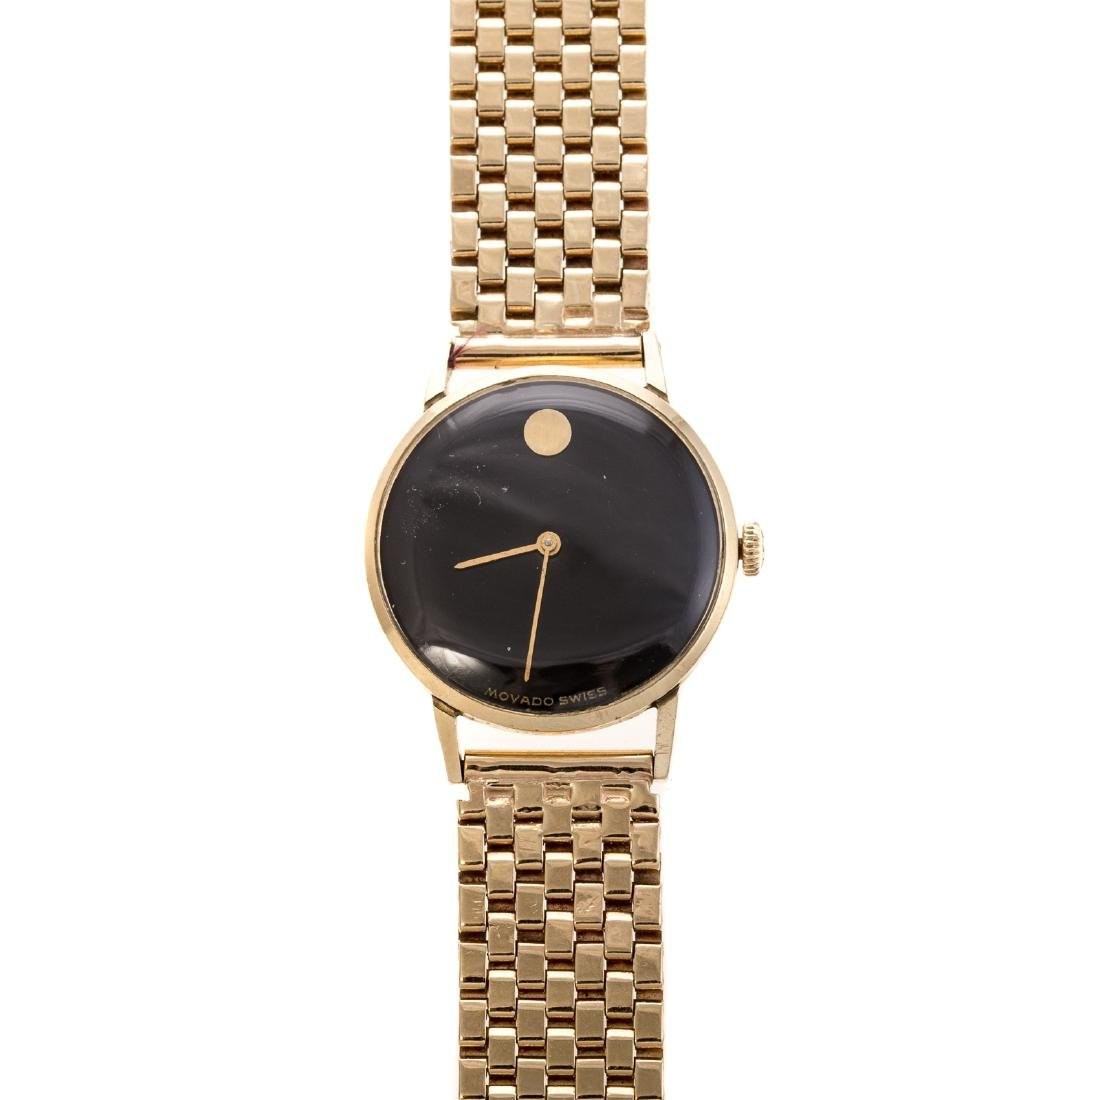 A Lady's Movado Watch in 14K Gold